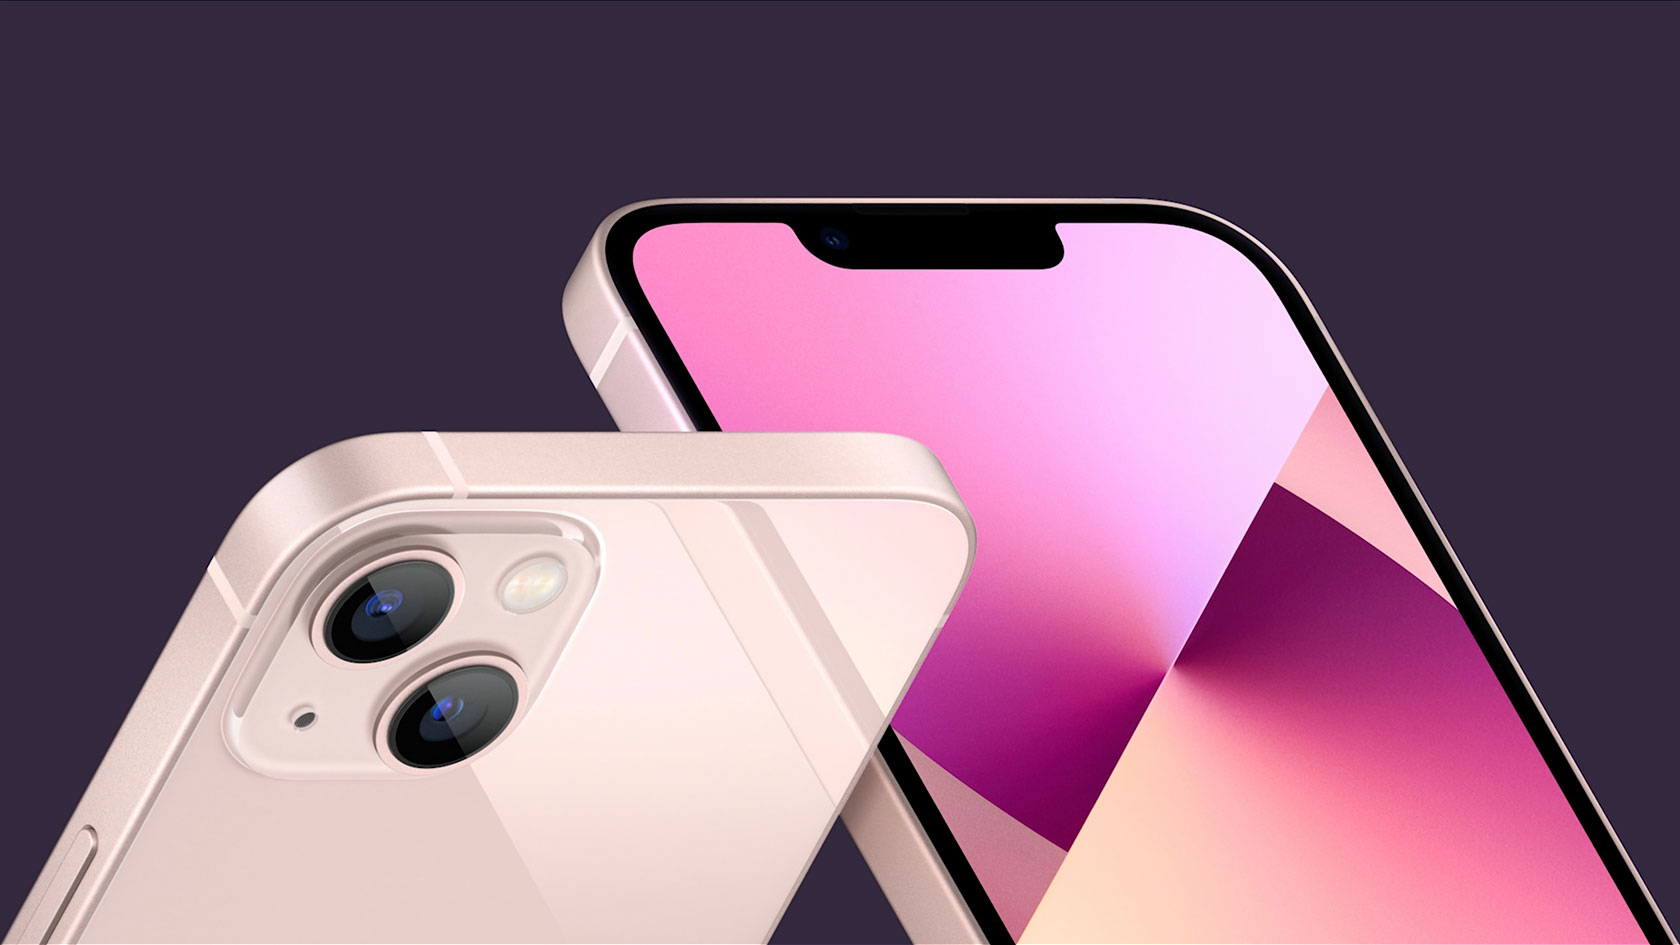 When will iPhone 13 release in India?